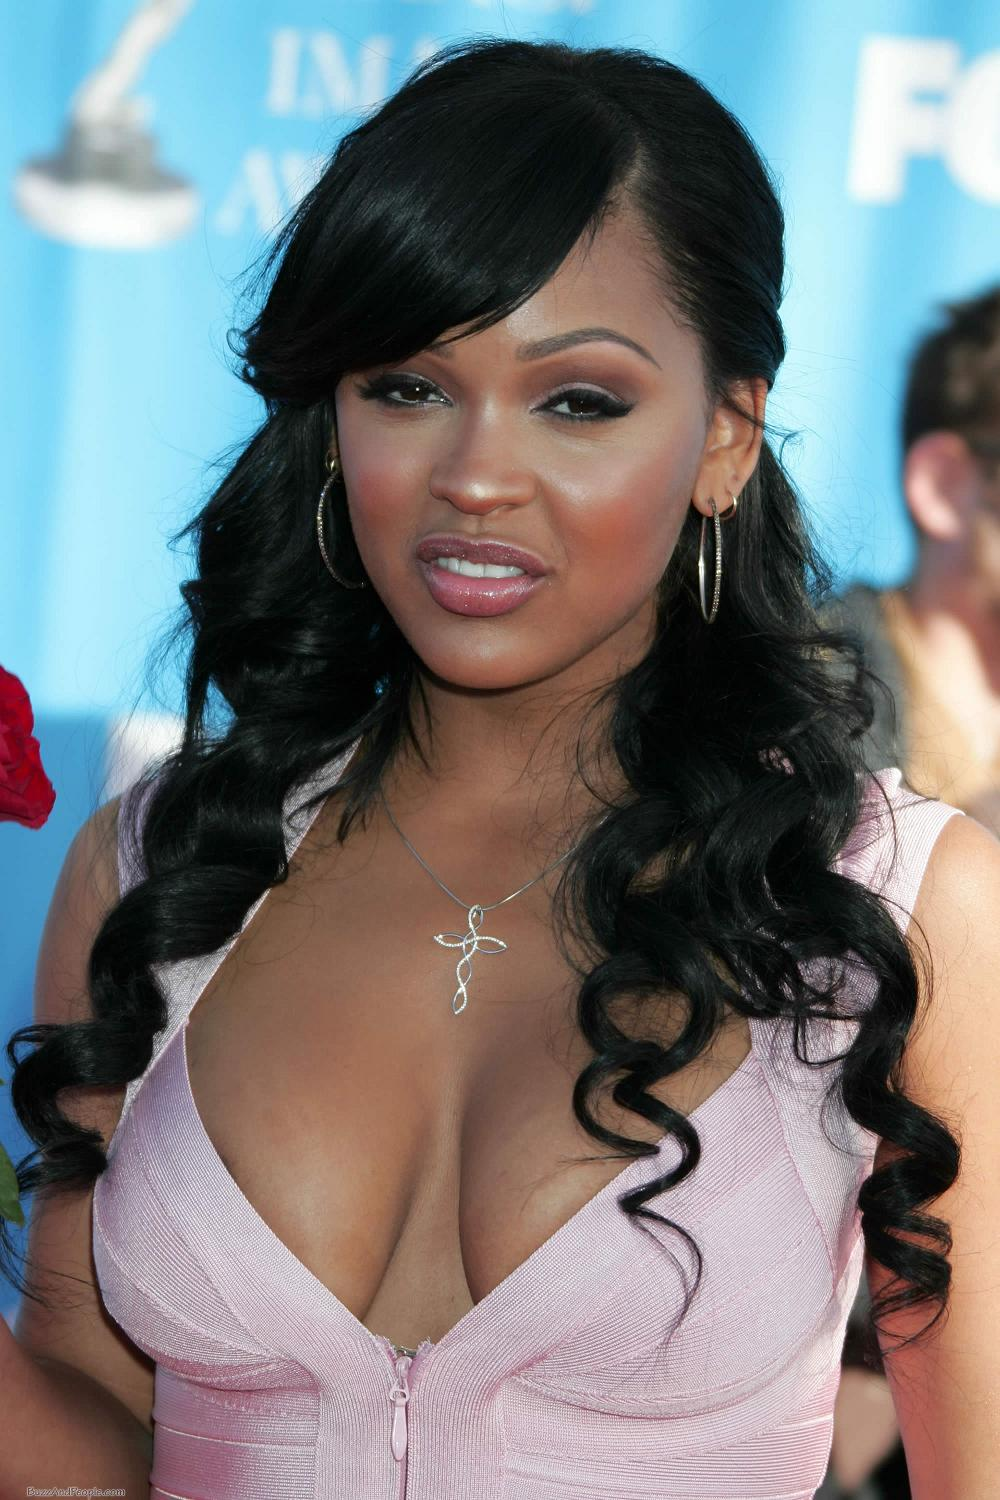 Nude Pics Of Meagan Good 56